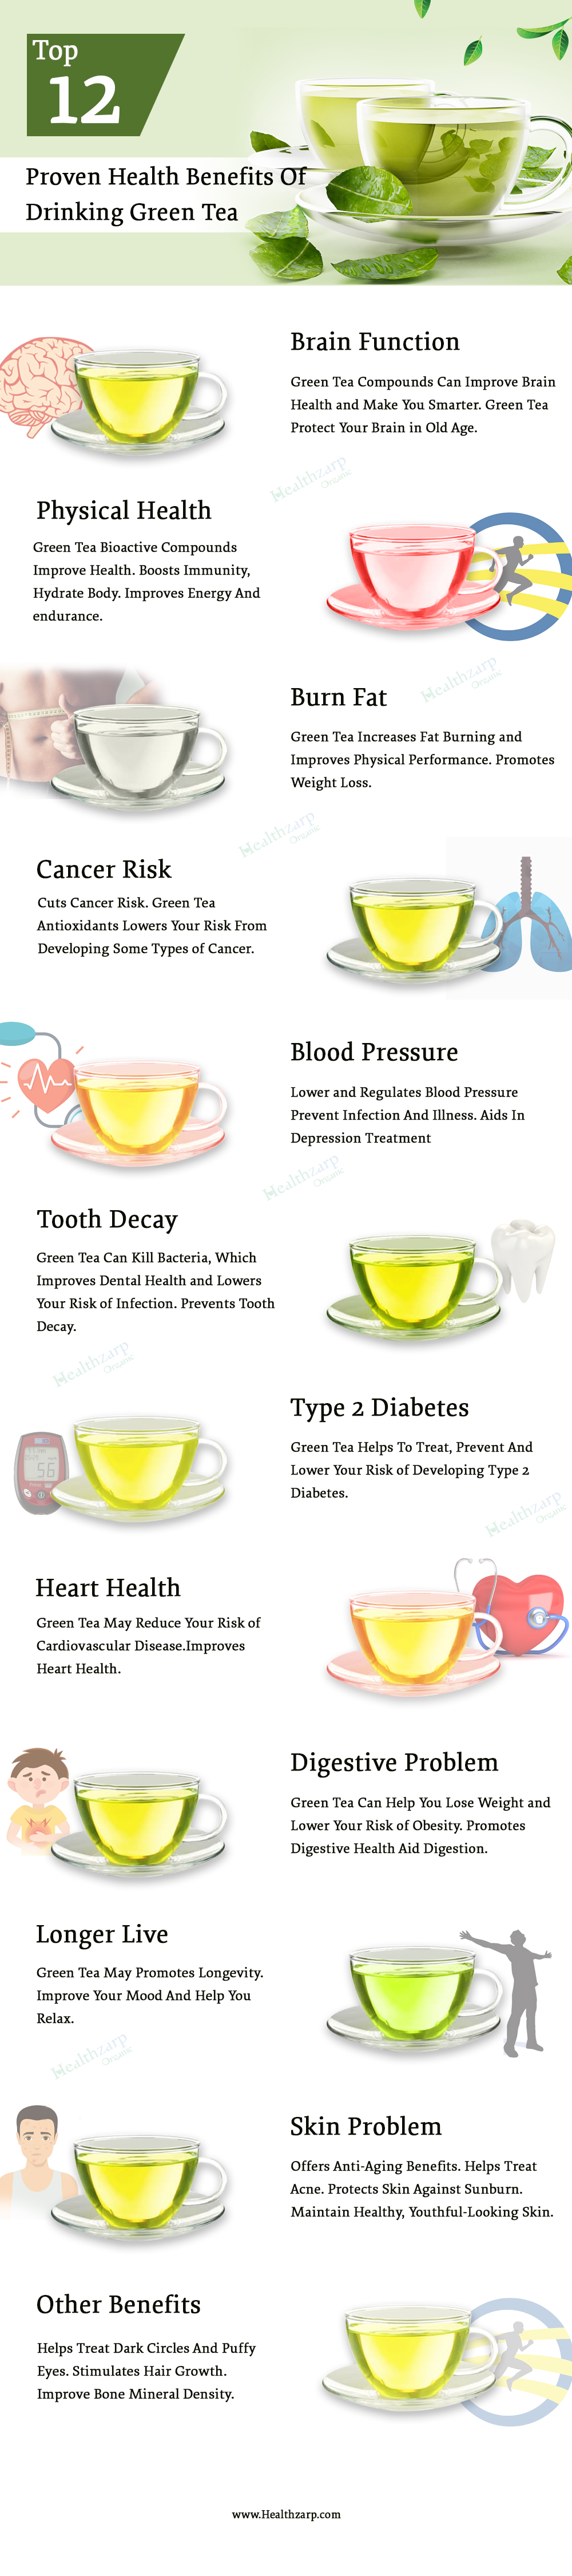 top 12 proven health benefits of drinking green tea| best